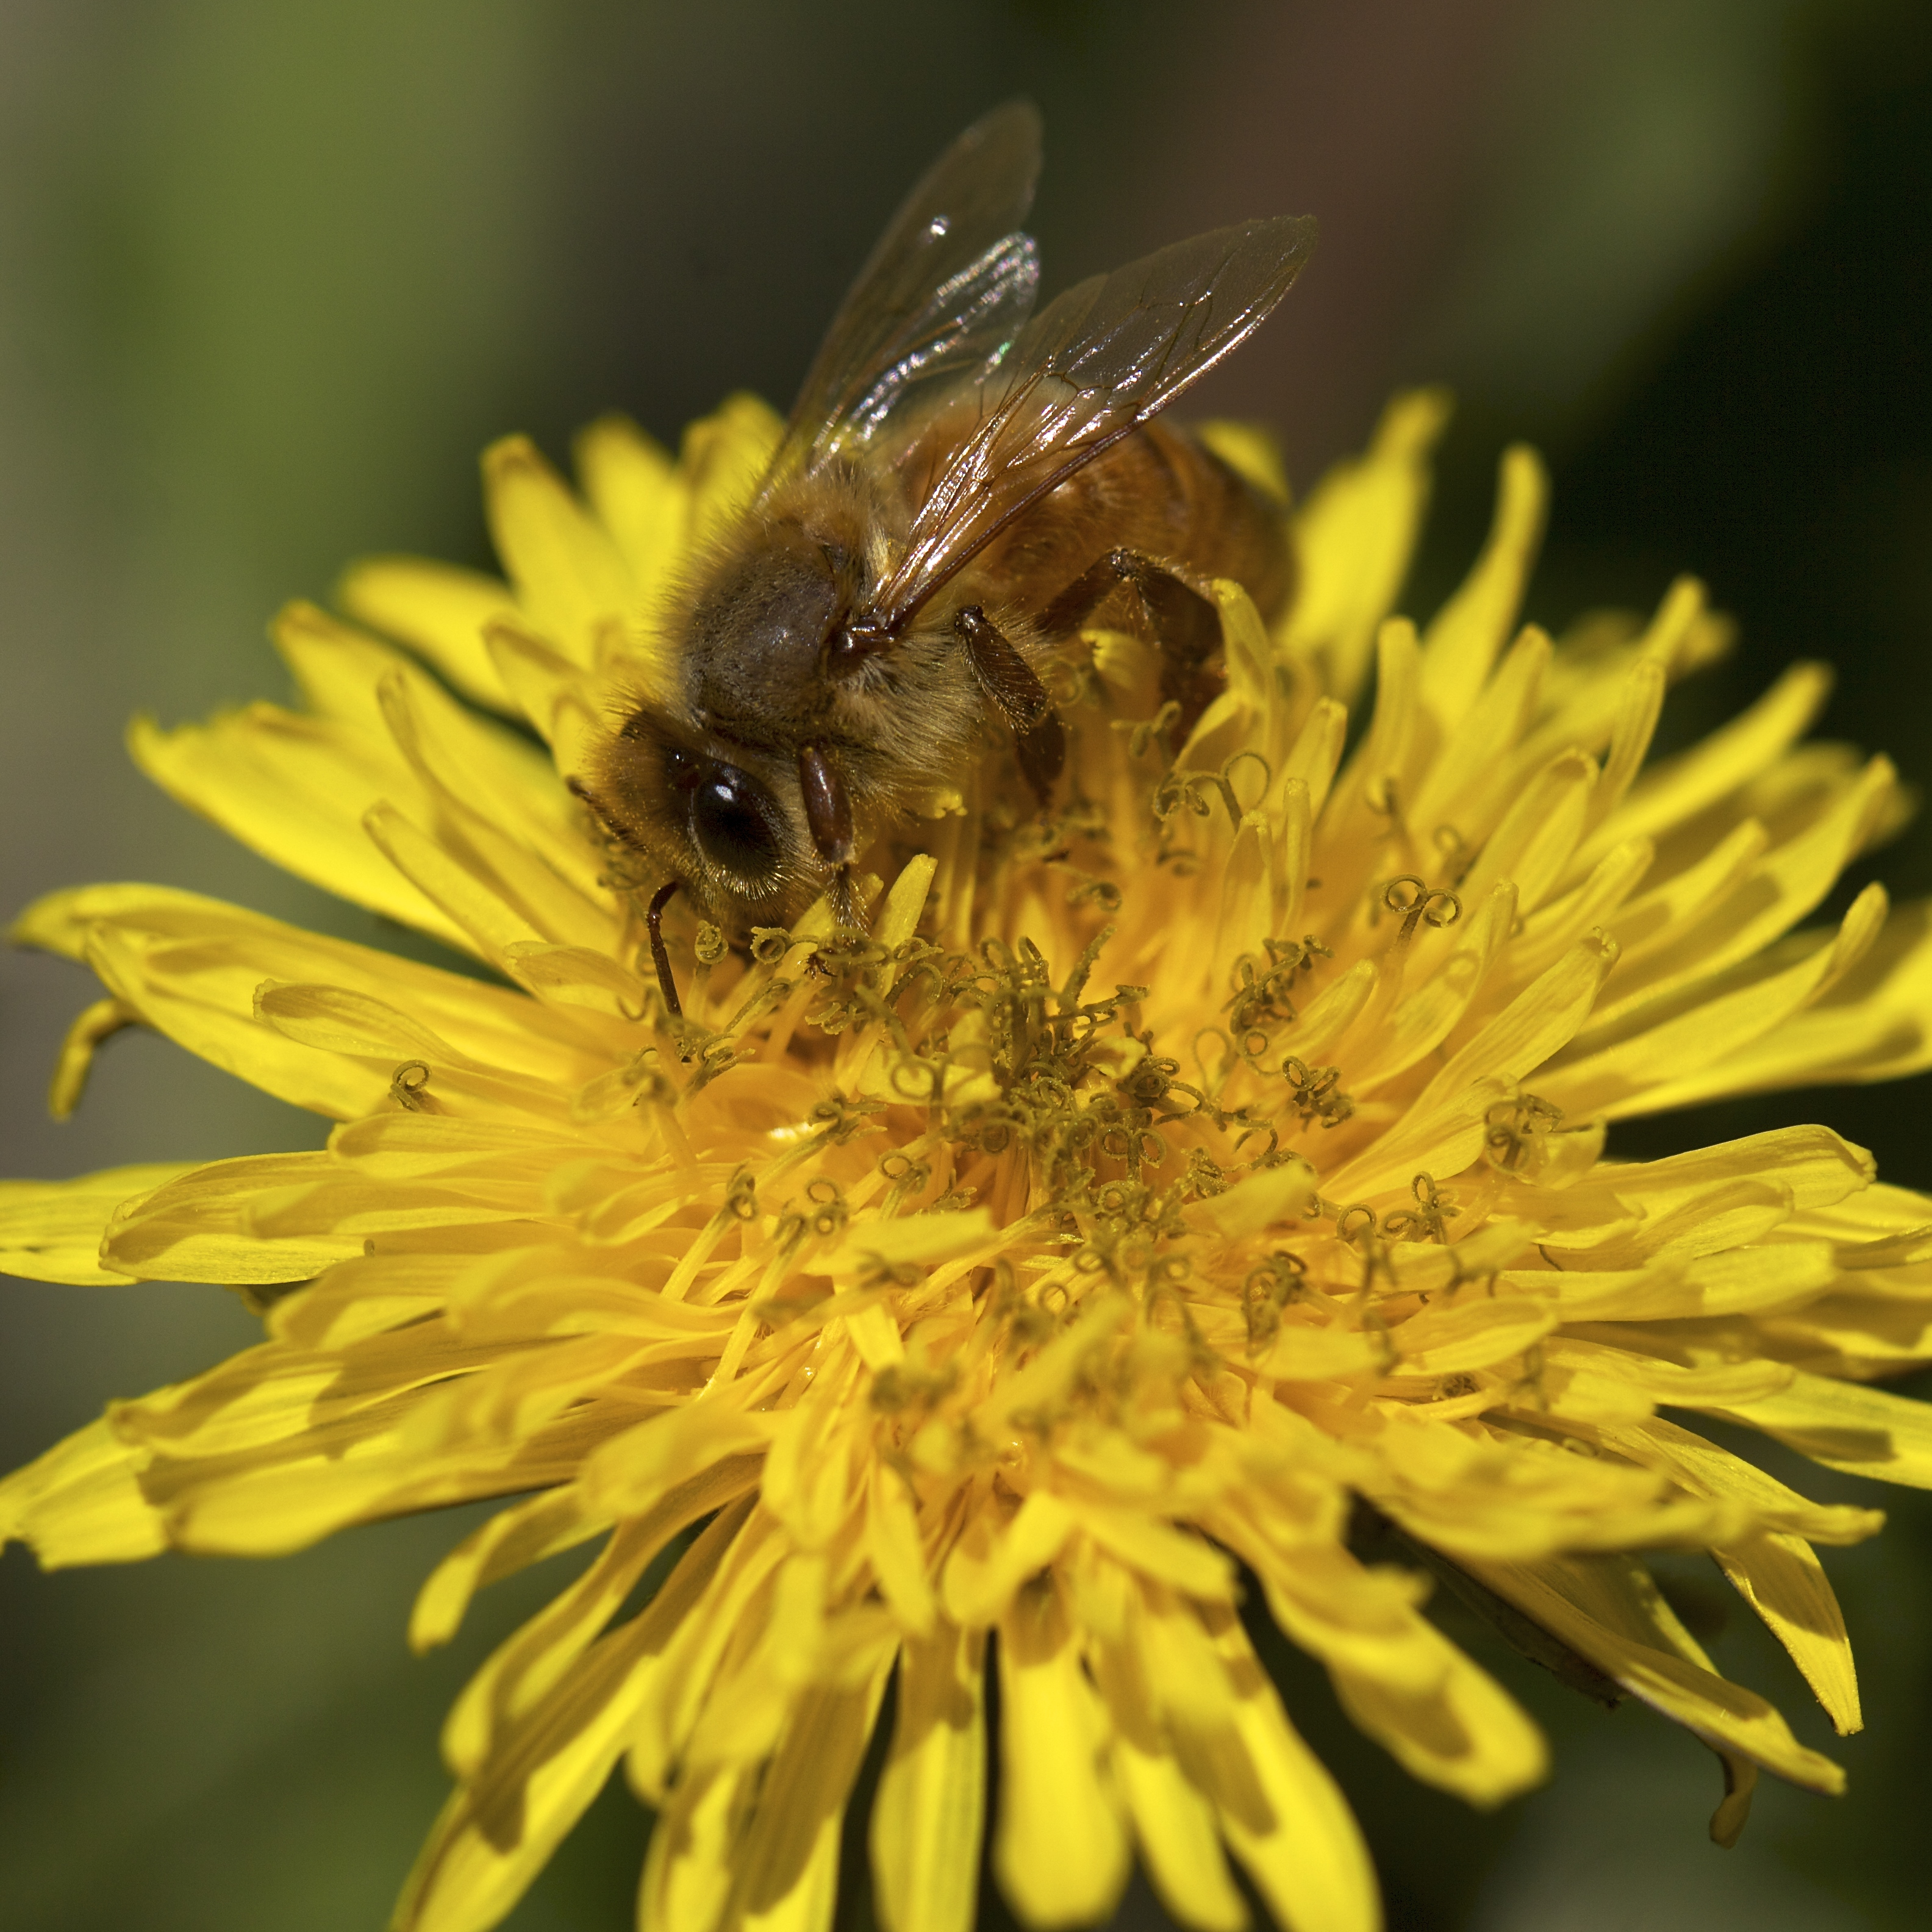 I let the dandelions grow on the fringes of the garden beds, on the edges of paths. They're an important early source for all the species of bees.